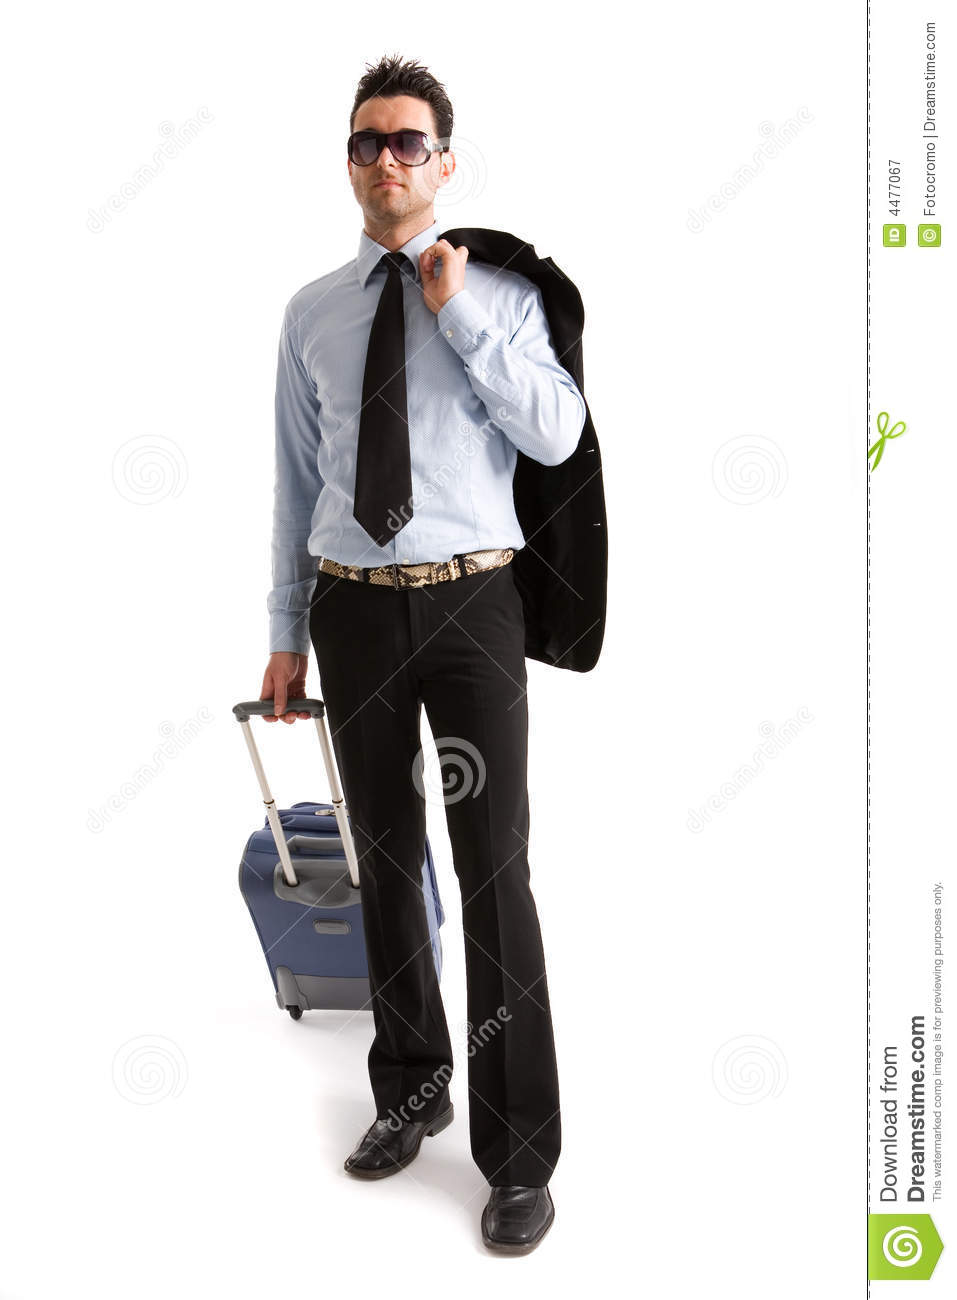 Man With Suitcase Royalty Free Stock Photography - Image: 4477067